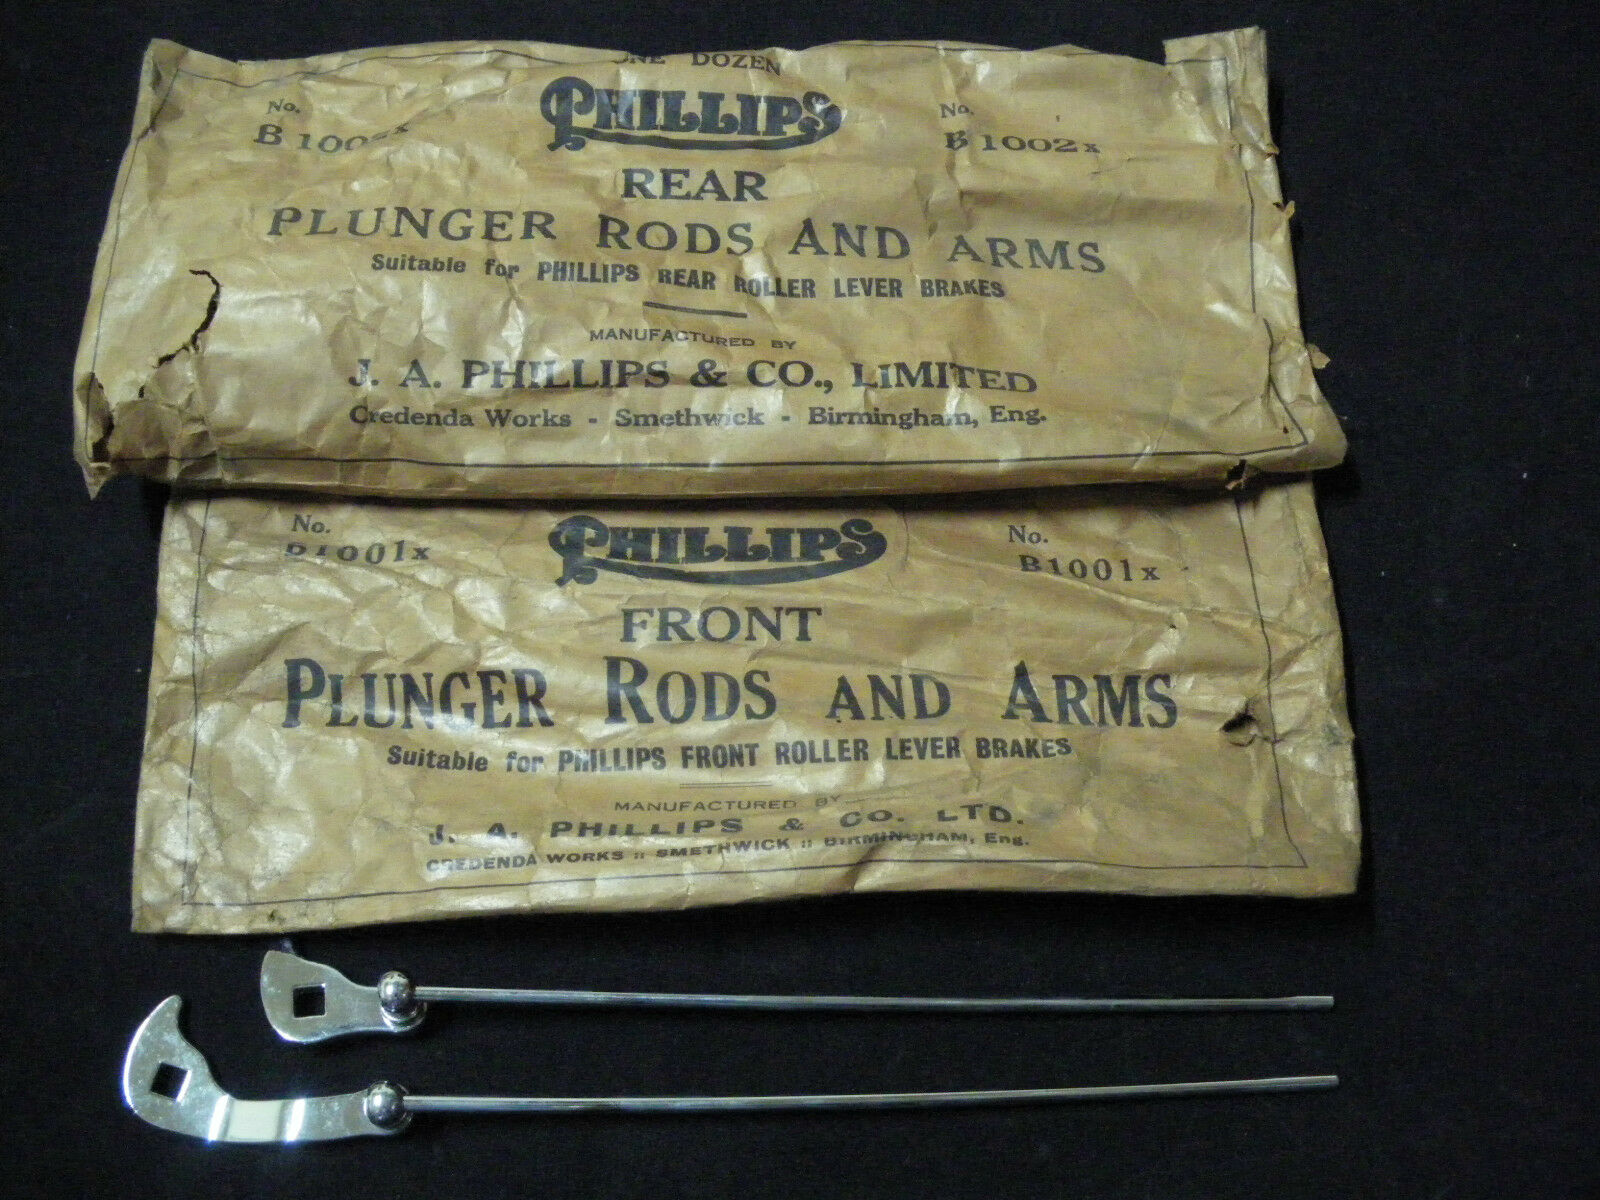 RARE Vintage PHILLIPS Bicycle Handlebar Plunger Rods and Arms (1 pair) NOS 1950s